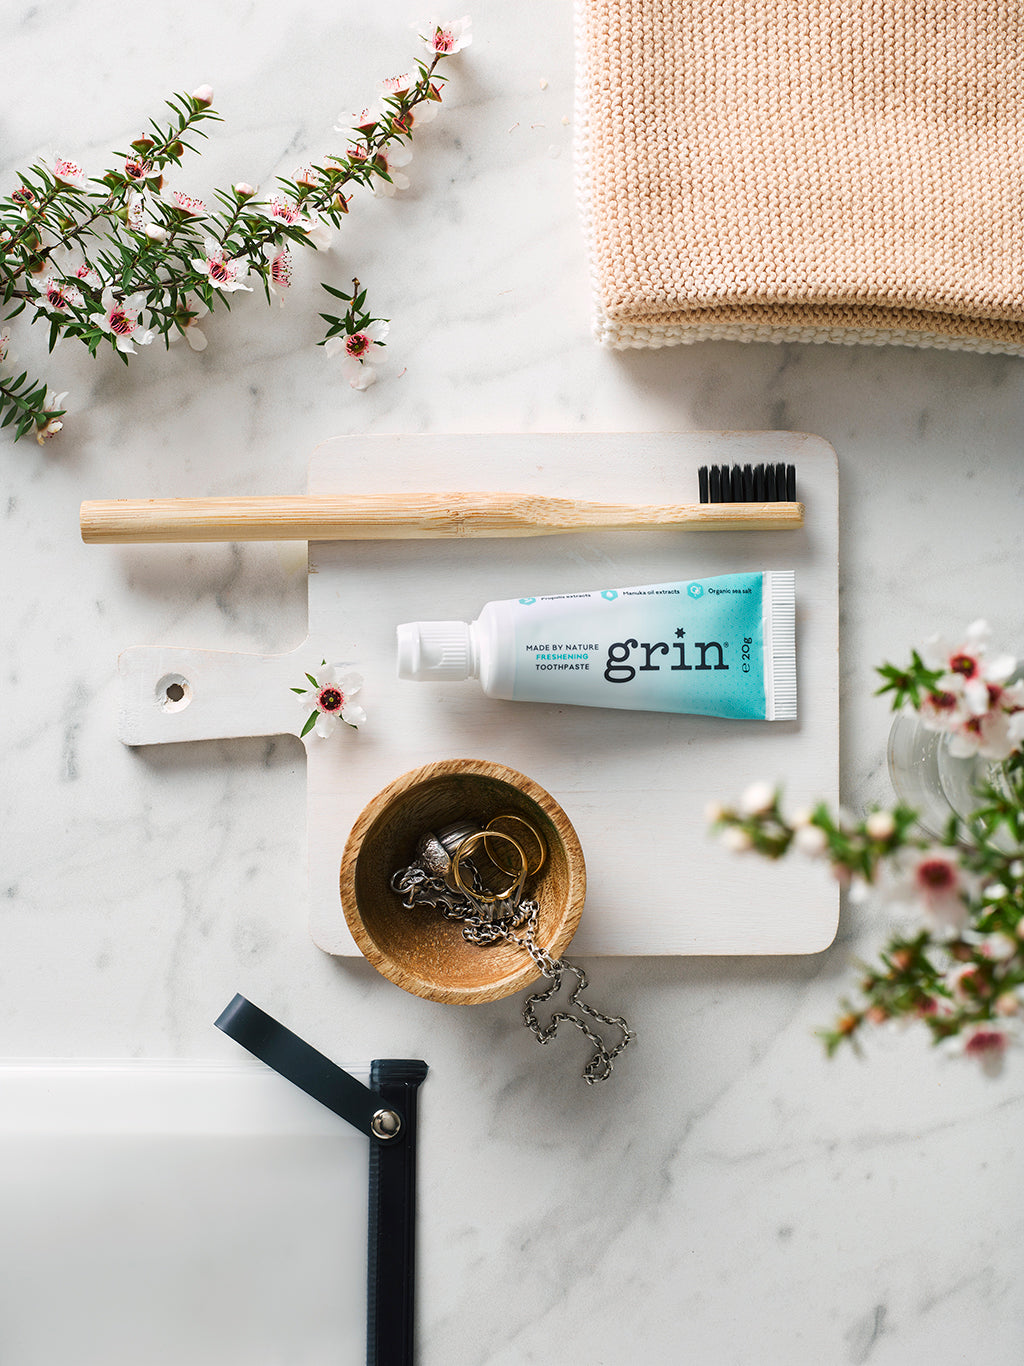 grin natural toothpaste, flosser, oral care